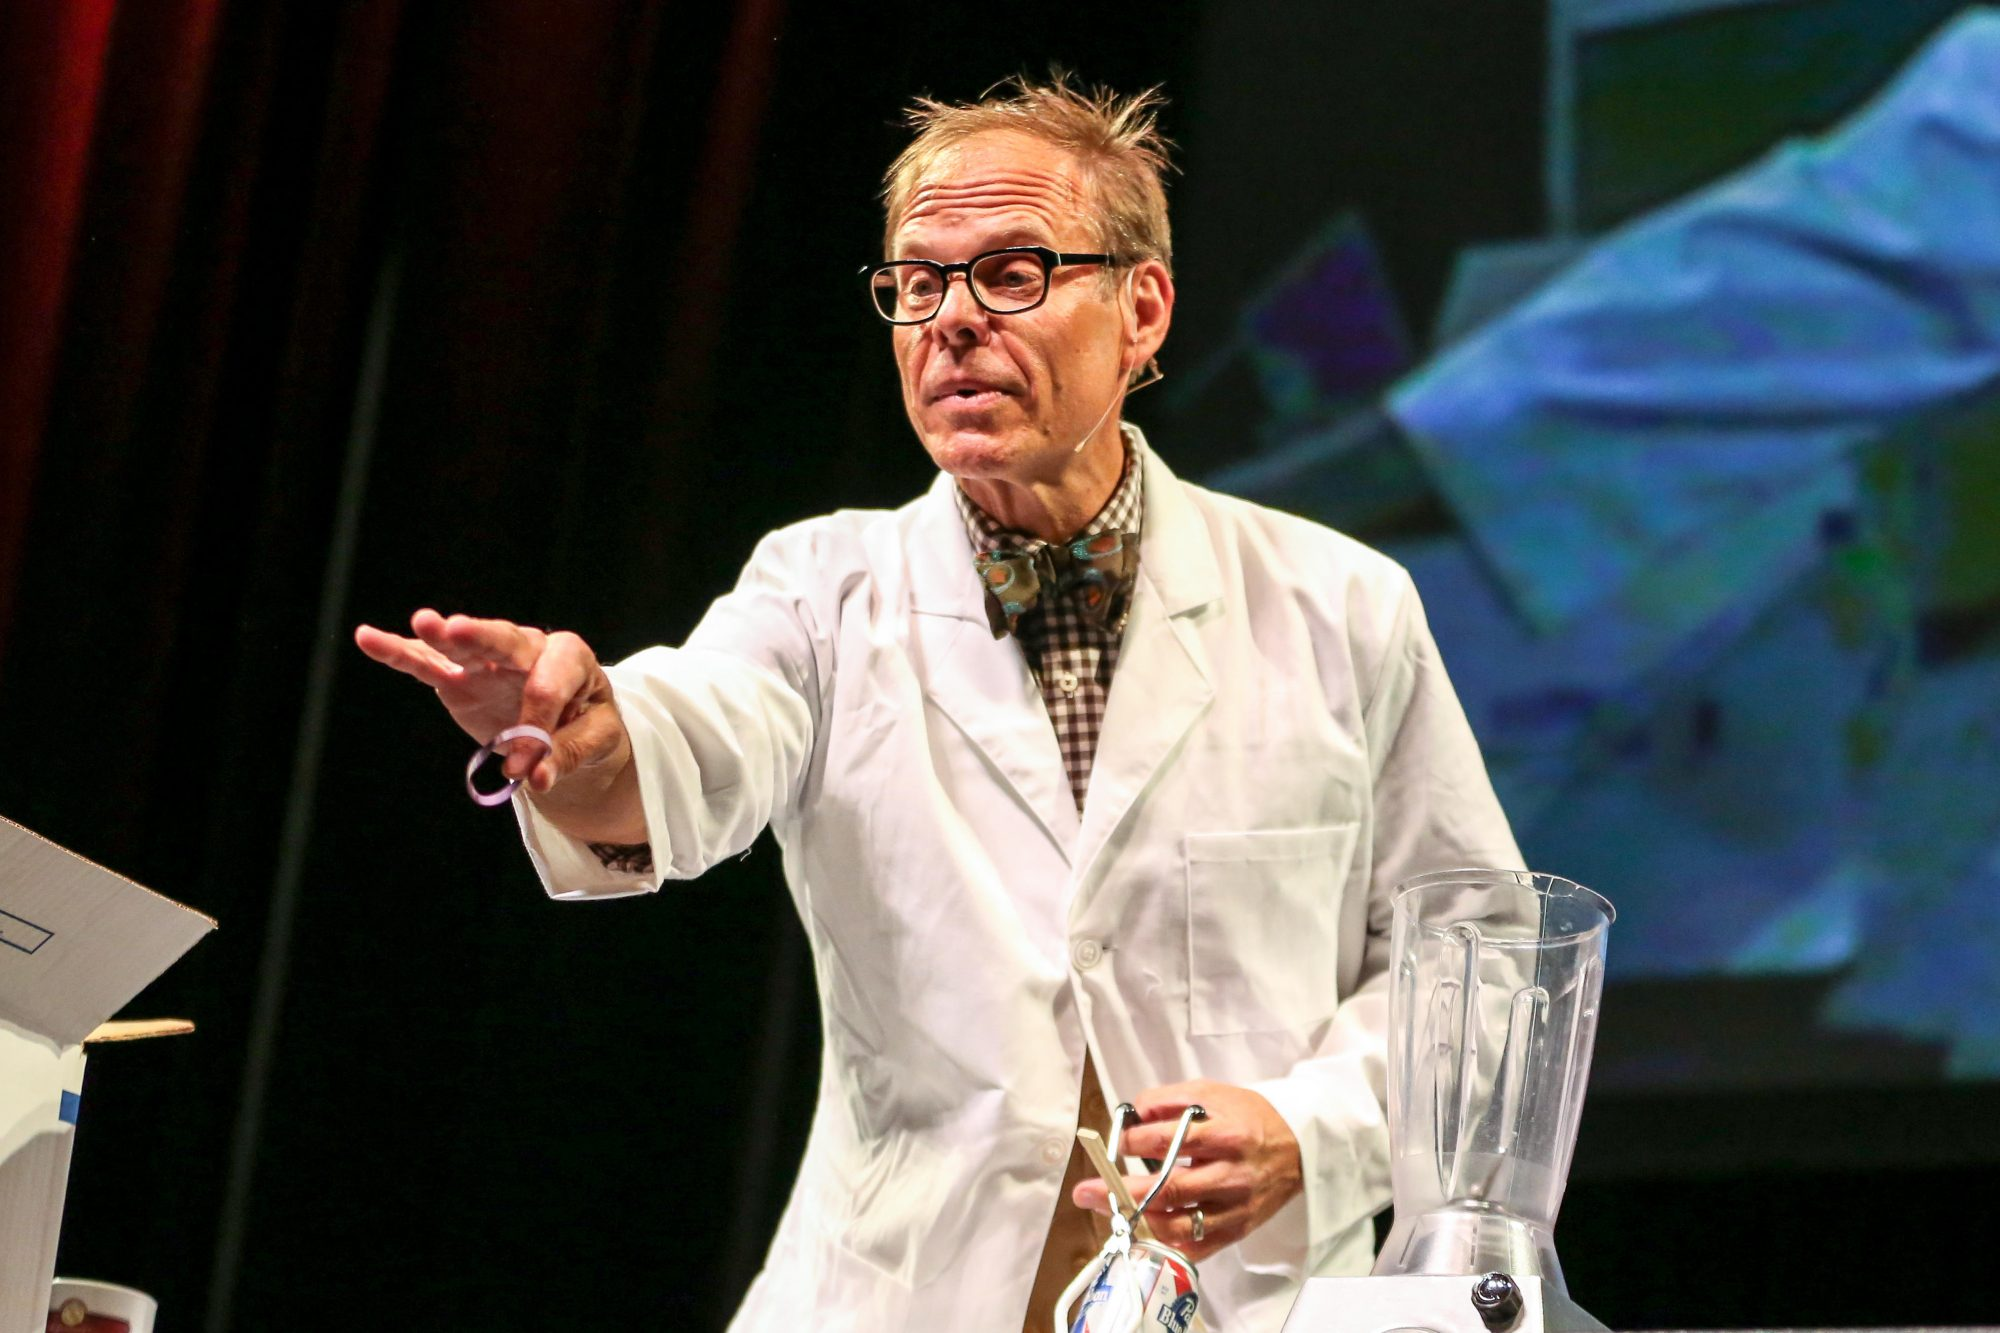 Most Kitchen Gadgets Are 'Useless Crap,' Says Alton Brown. Here's What You Really Need